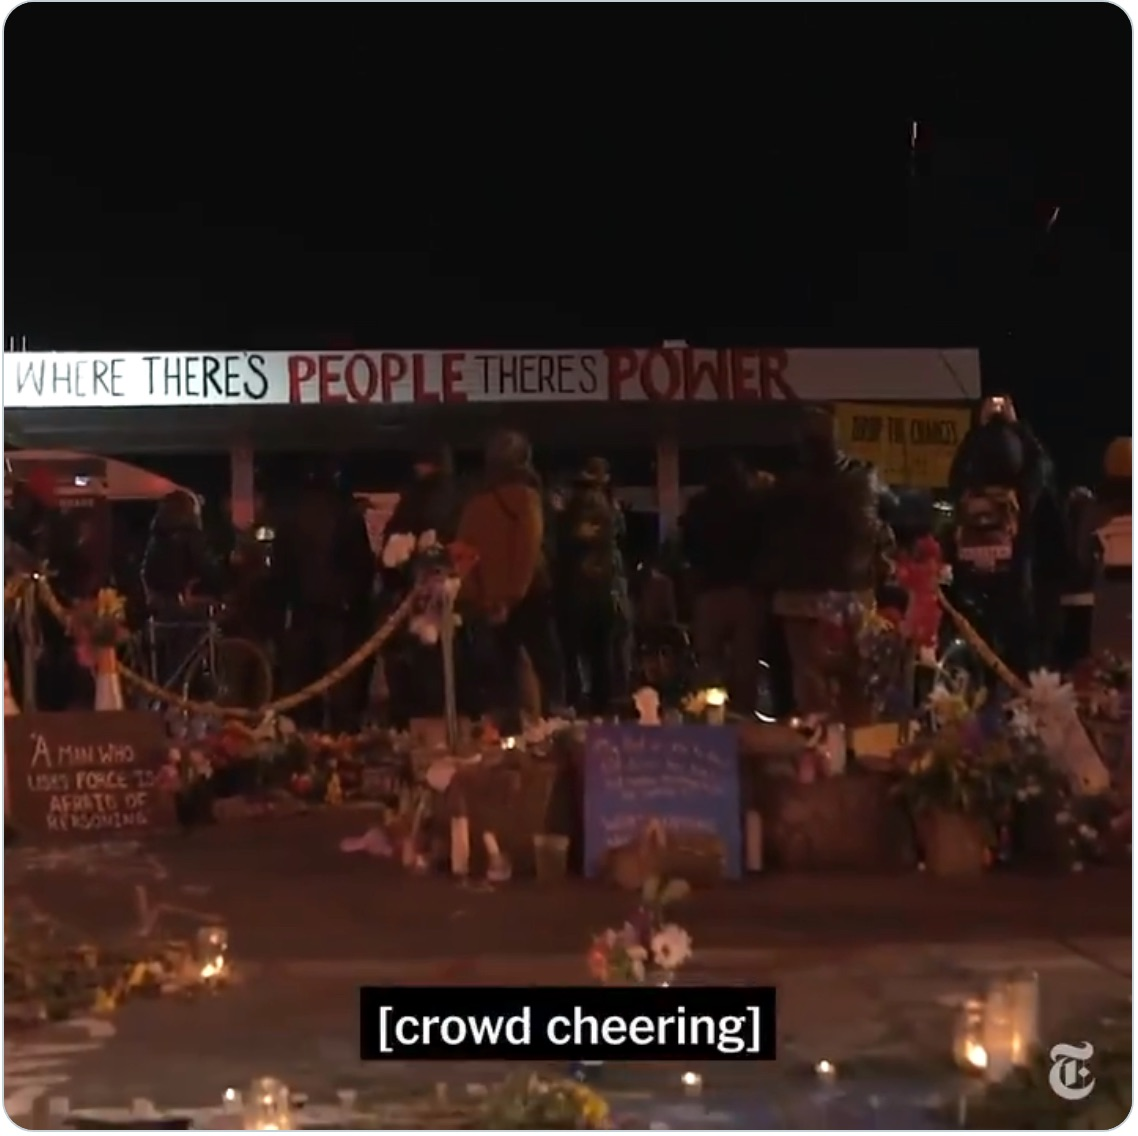 BLM angry floyd chauvin verdict